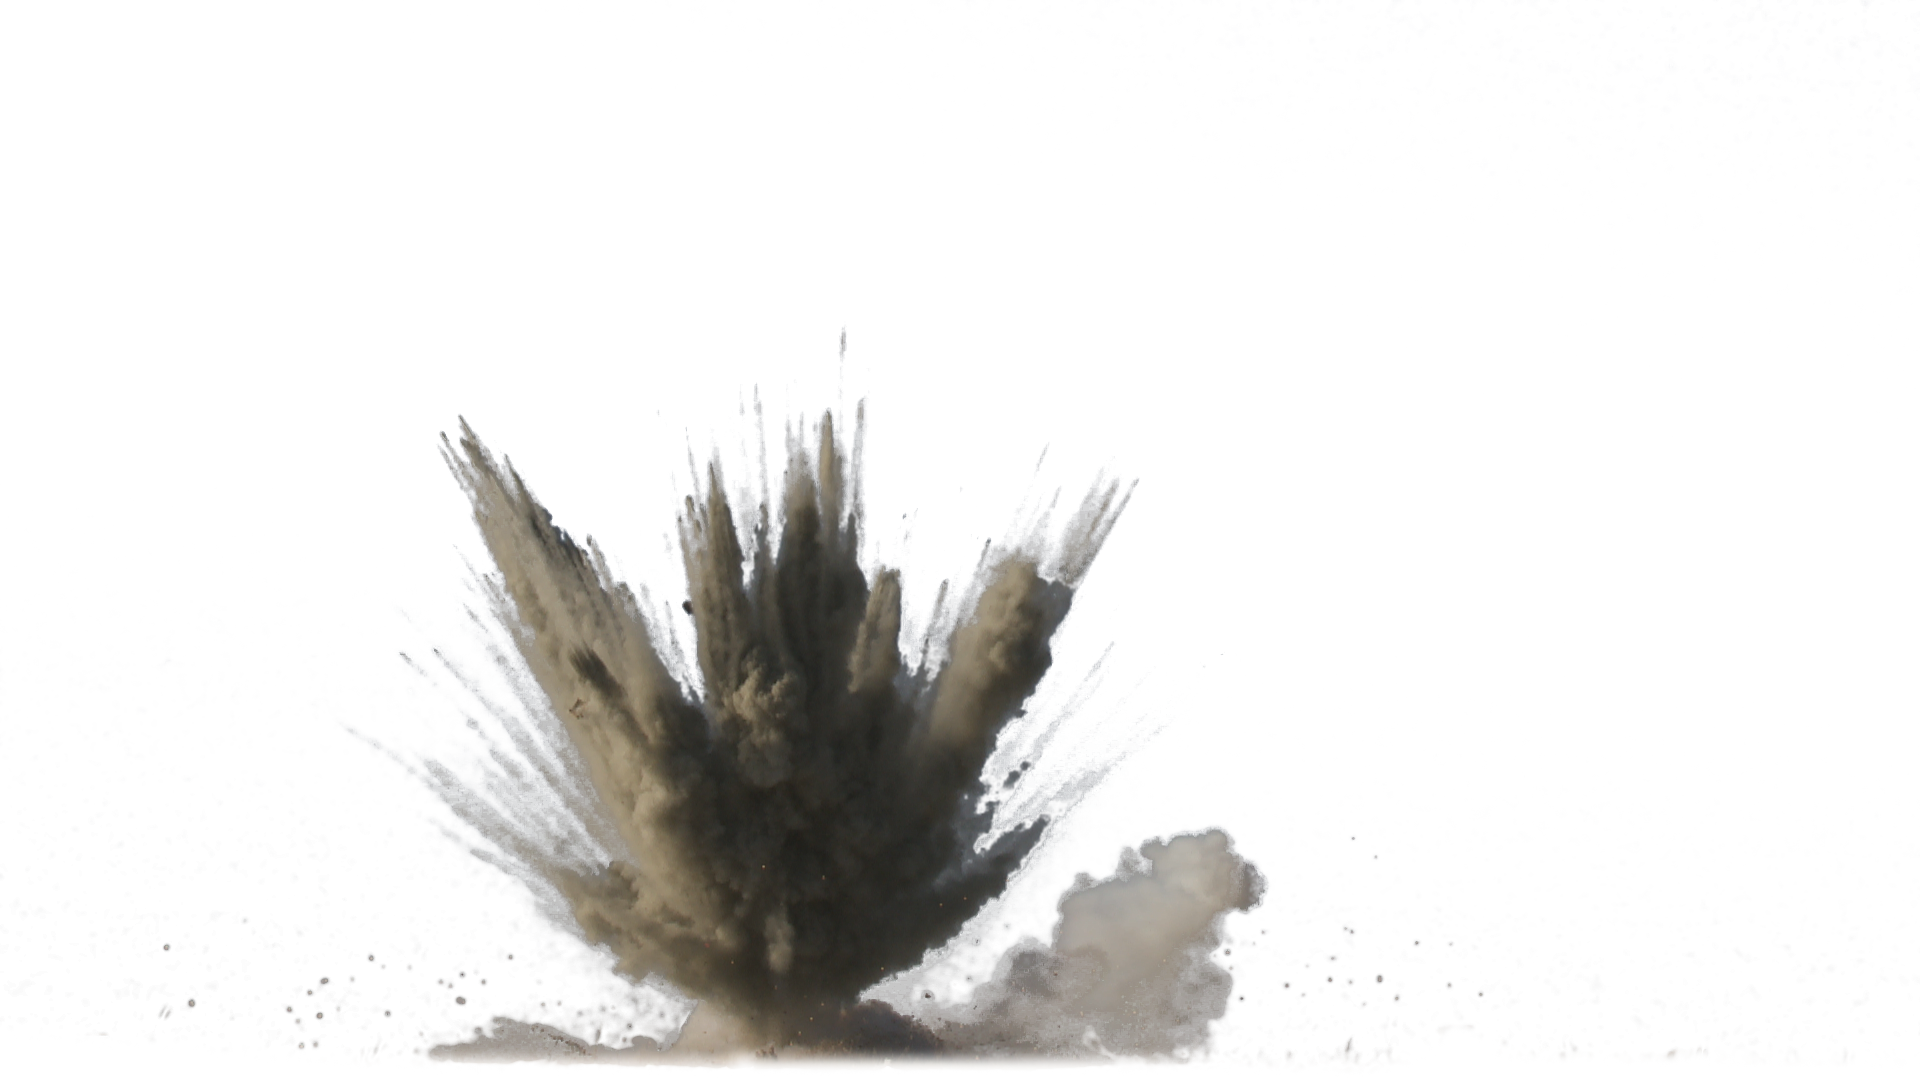 Explosion png image purepng. Dirt clipart dirt texture